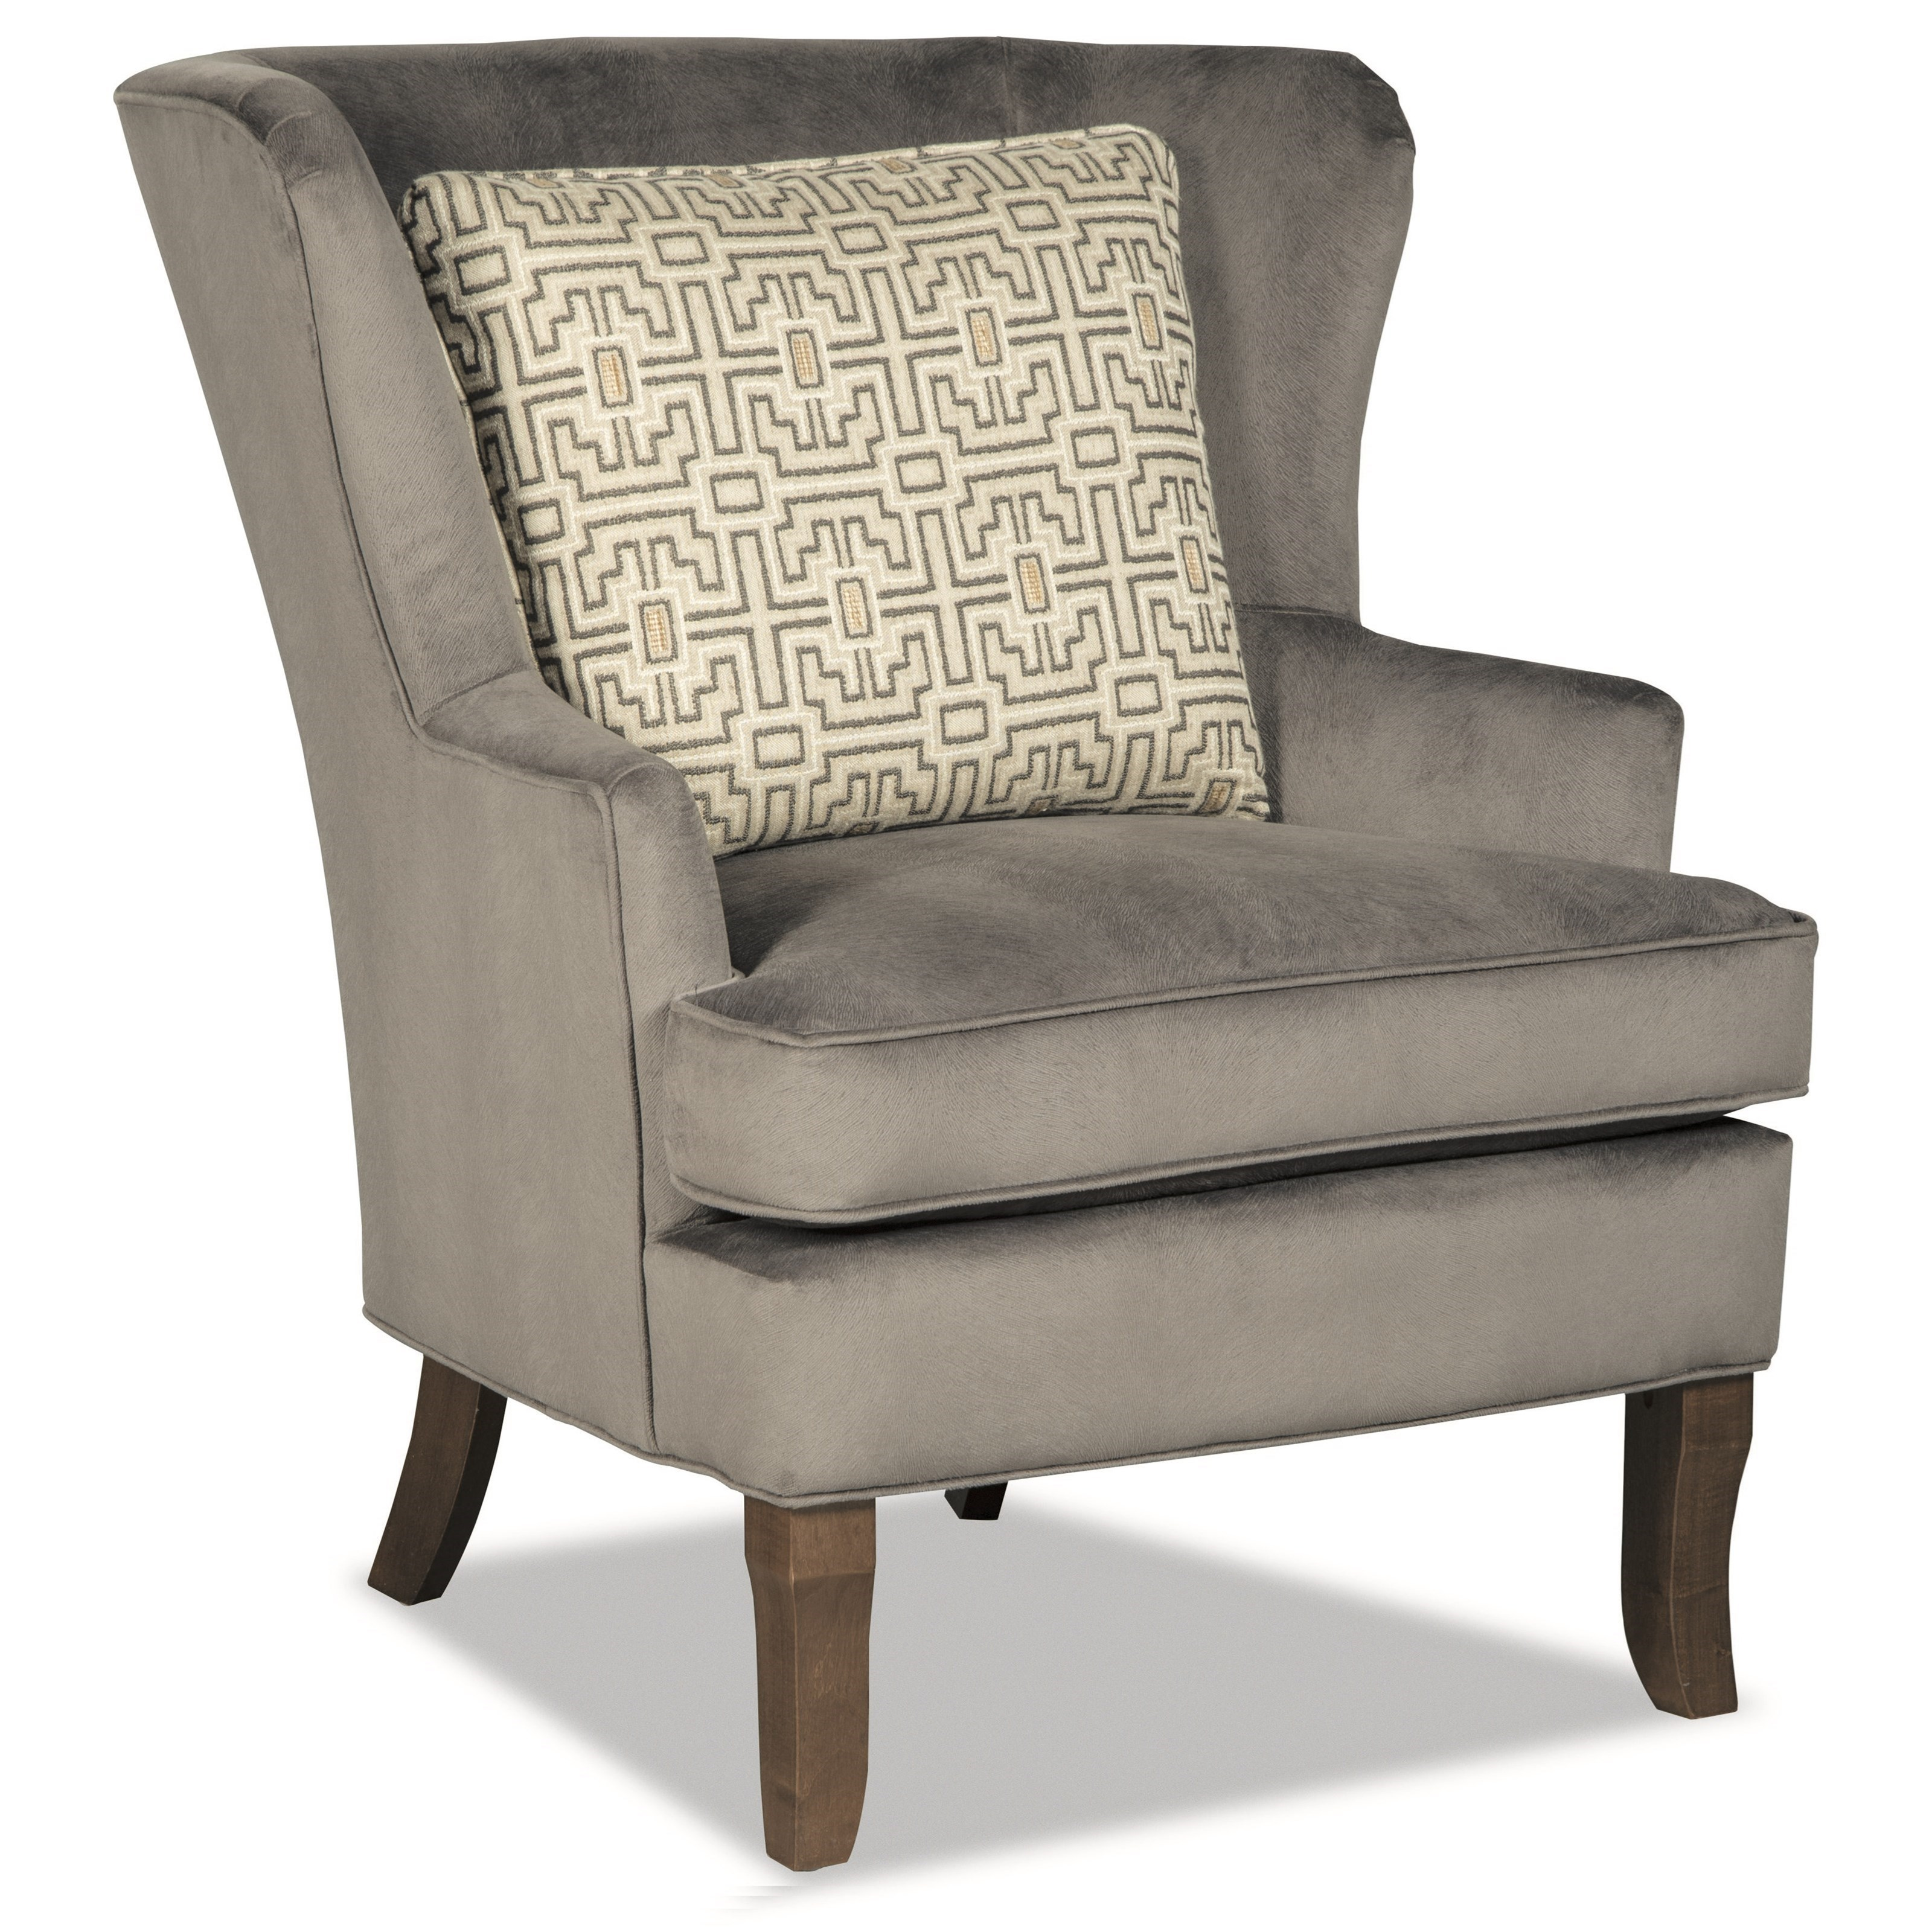 threshold wing item width chair fairfield trim legs cabriole chairs by products height front with